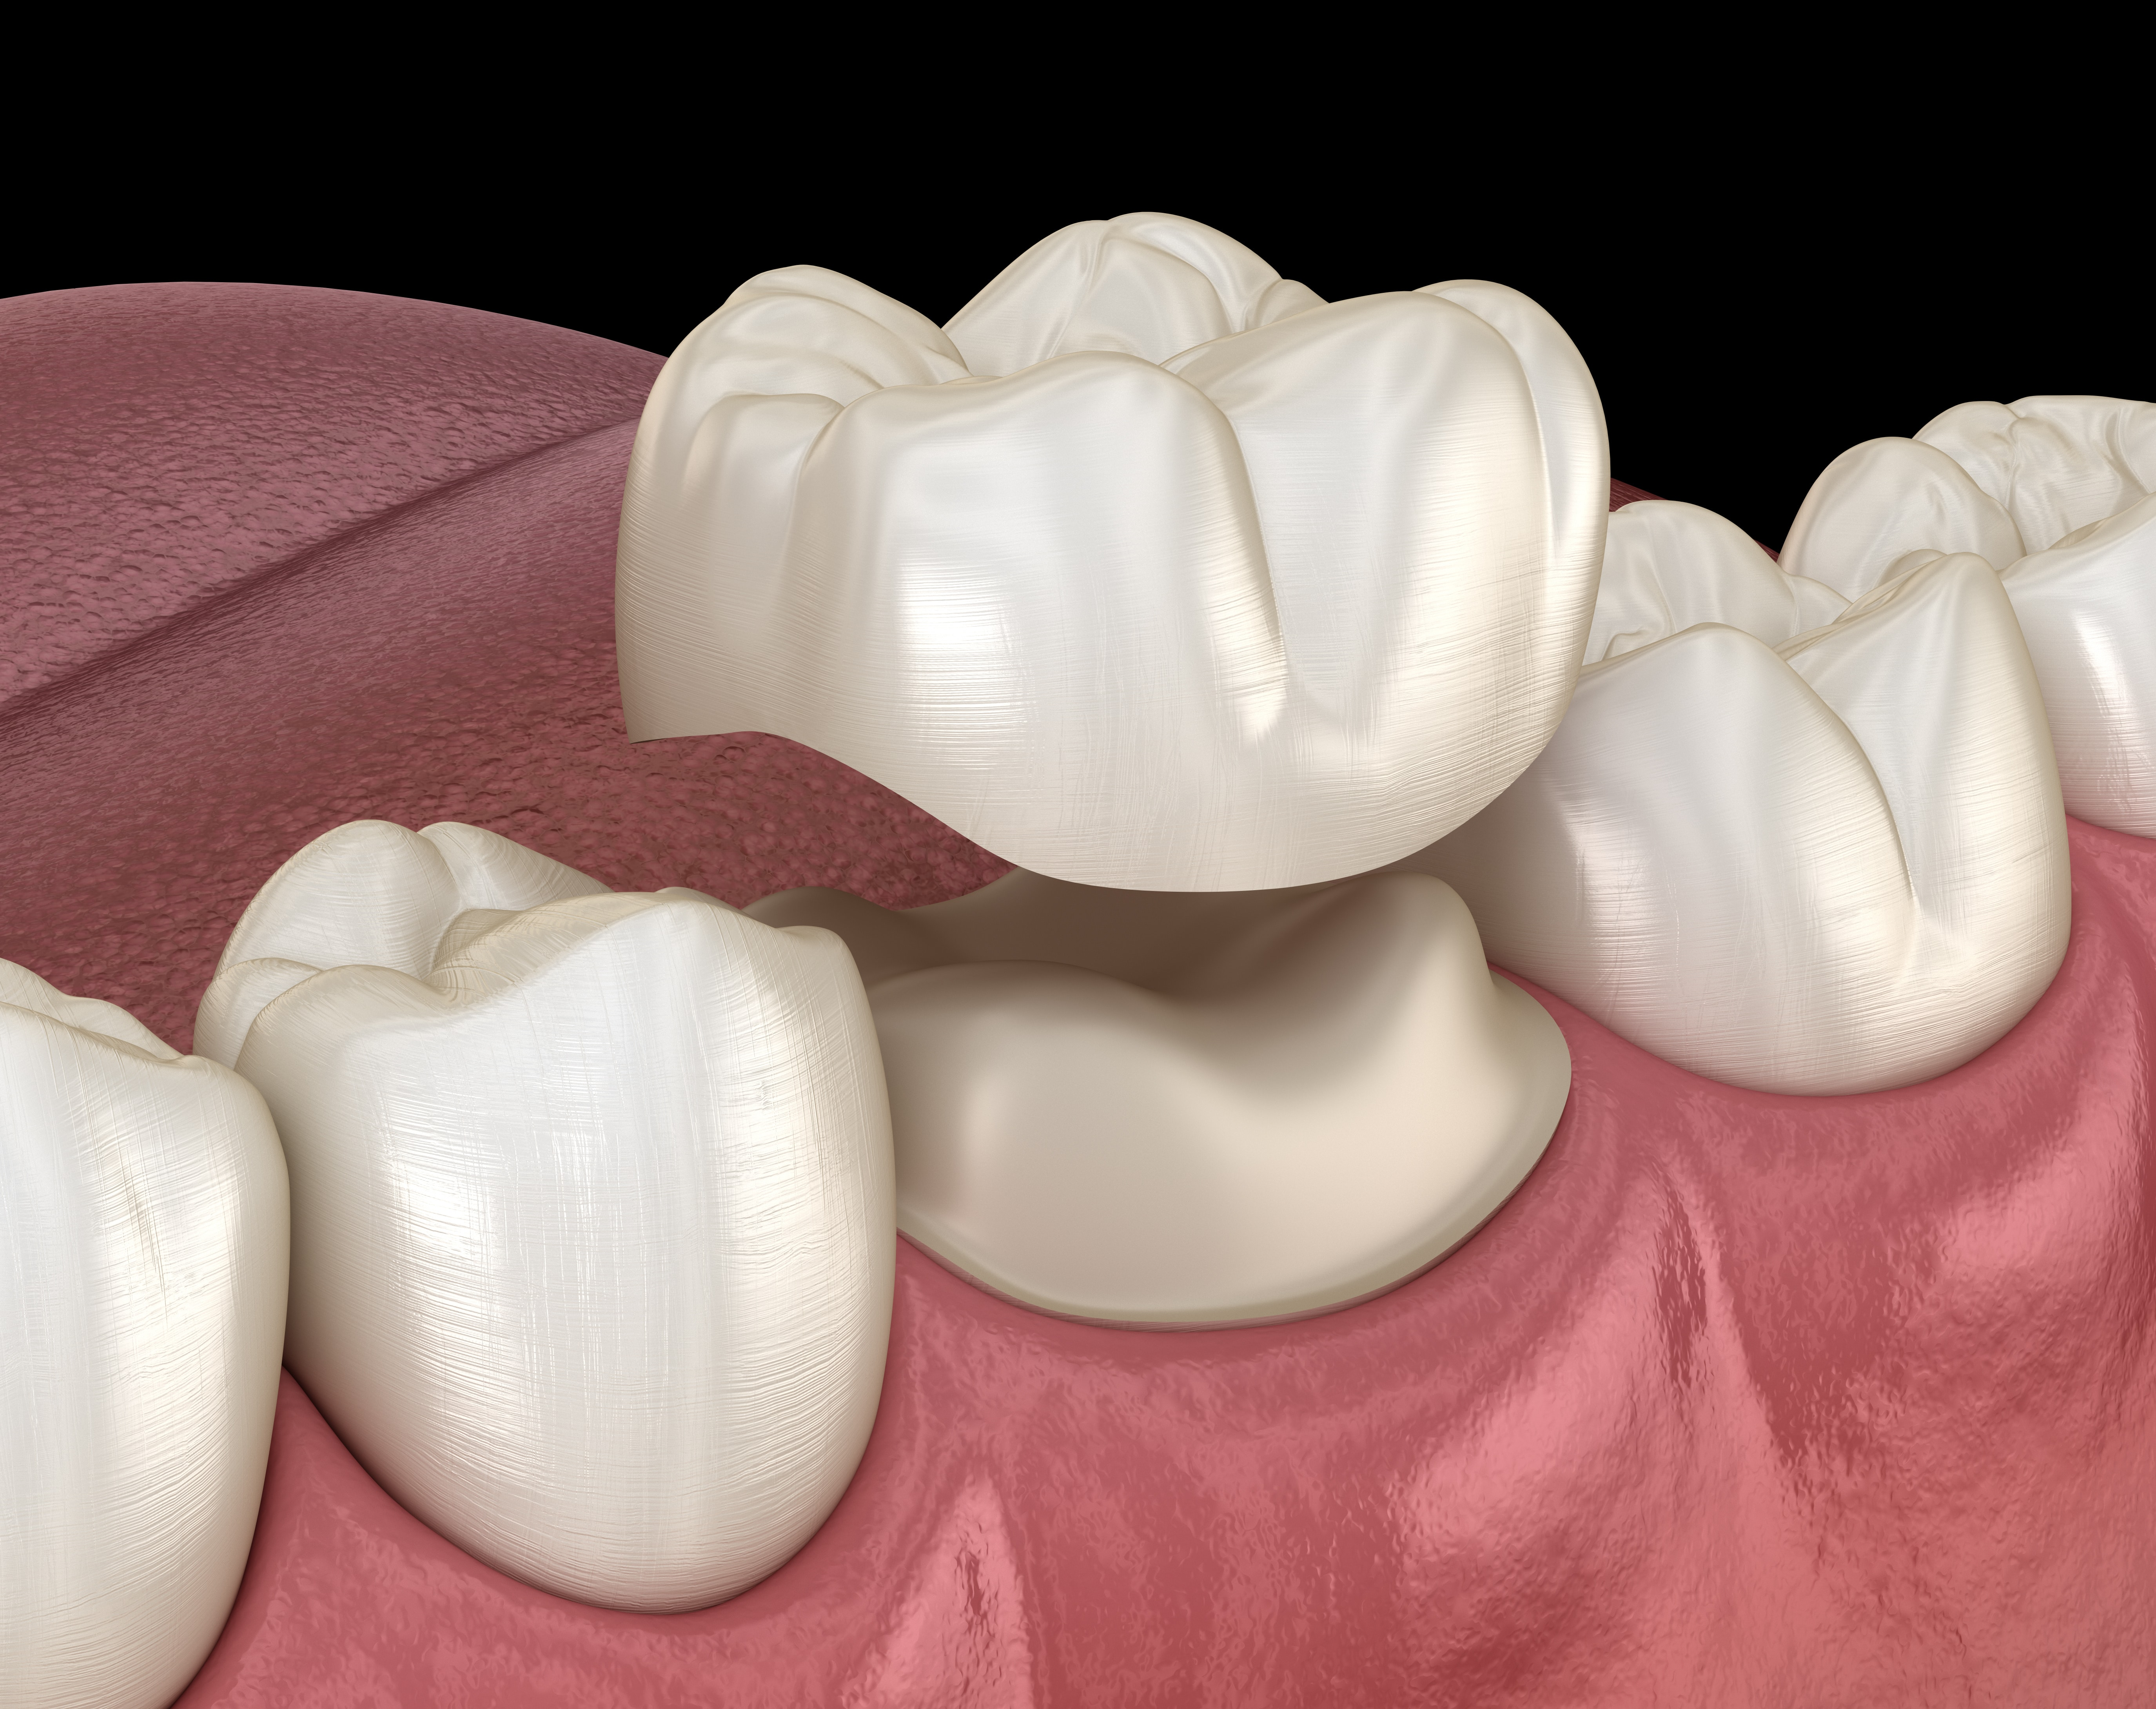 Preparated molar tooth for dental crown placement. Medically accurate 3D illustration